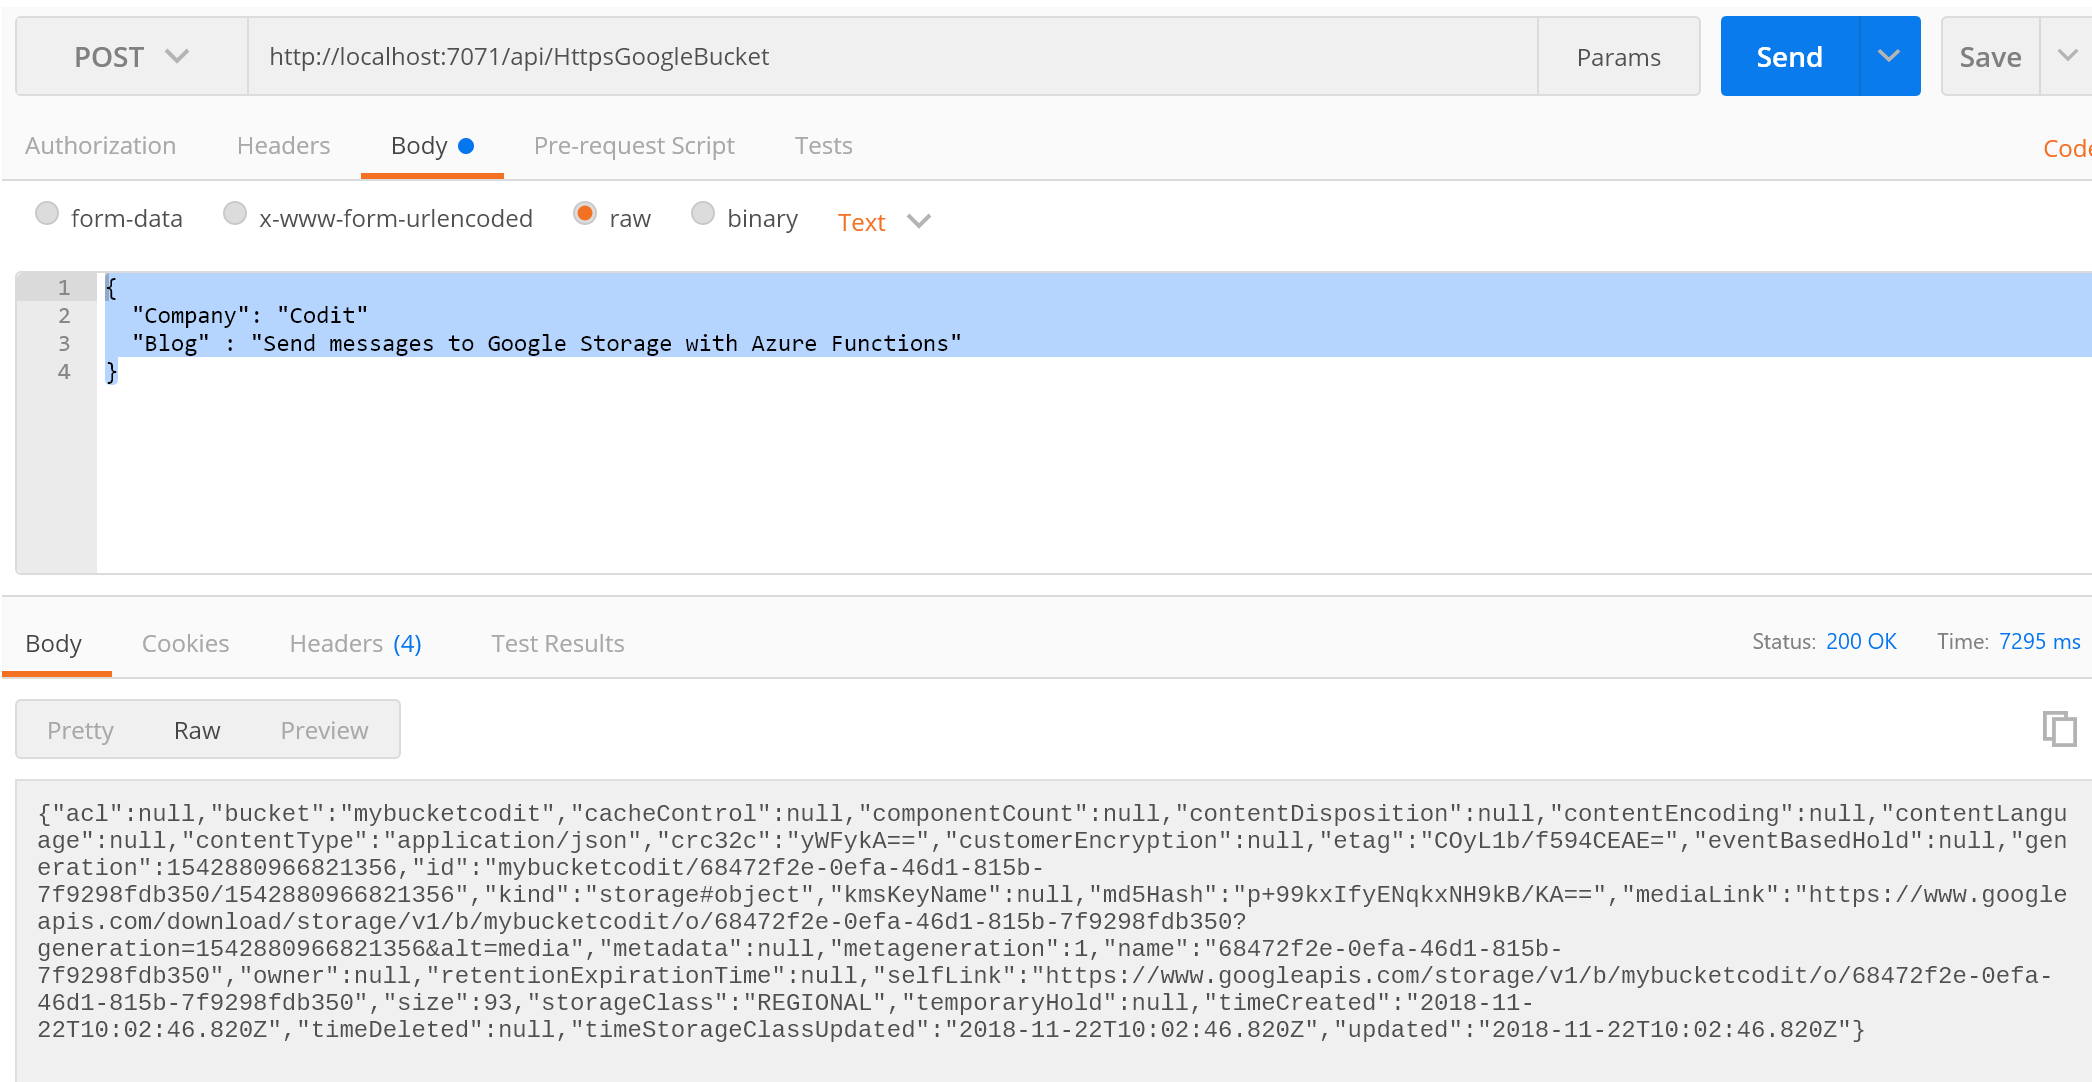 Send messages to Google Storage with Azure Functions - Picture 7